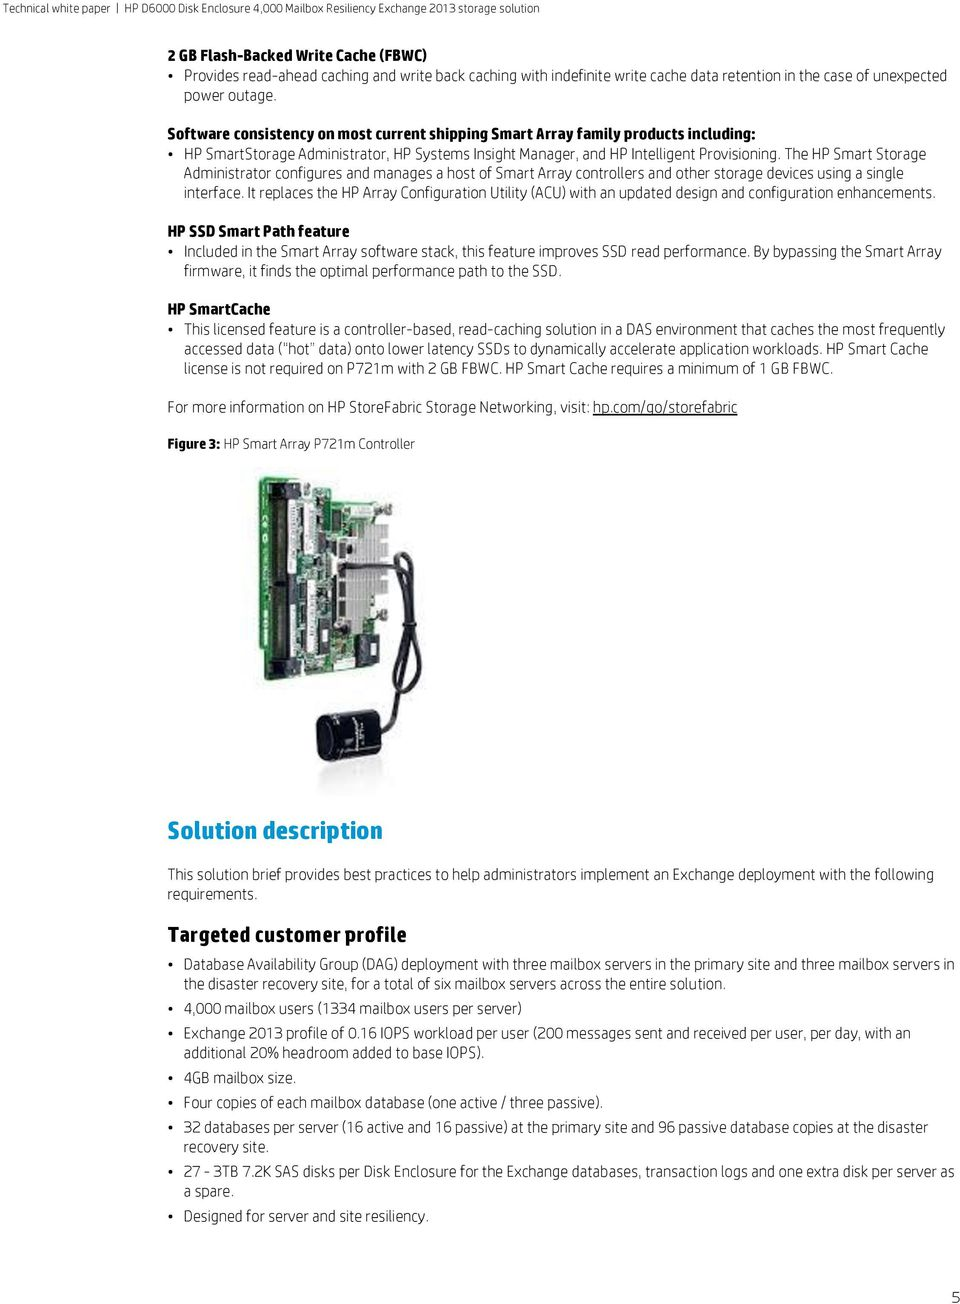 HP D6000 Disk Enclosure 4,000 Mailbox Resiliency Exchange